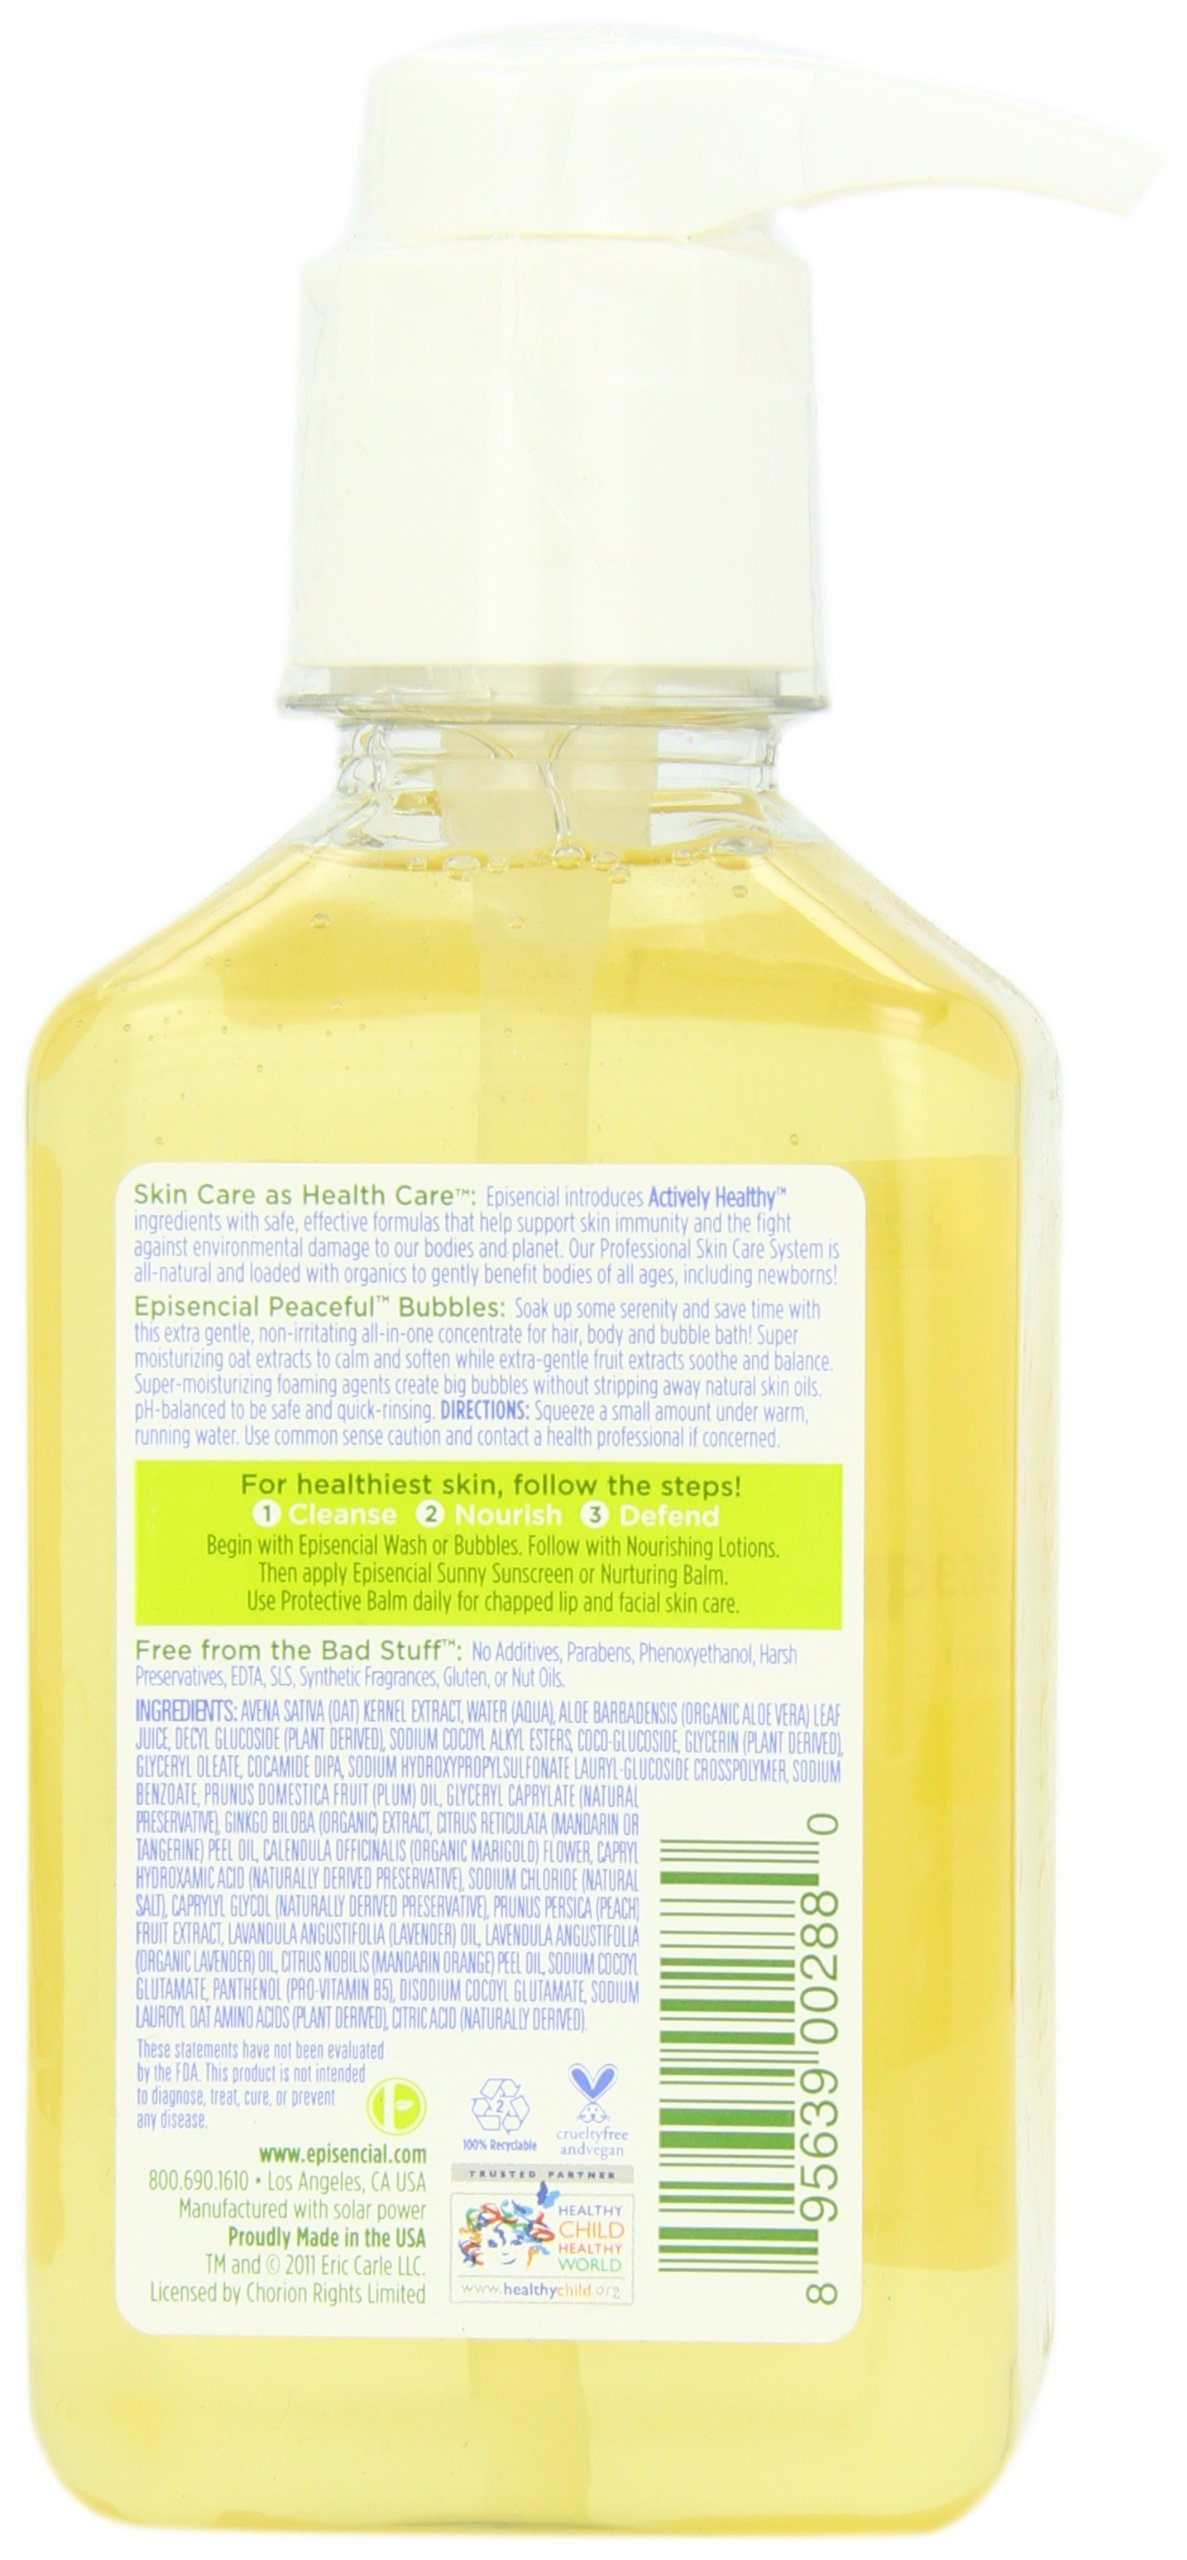 Babytime by Episencial Peaceful Bubbles - Organic Cleansing Bubble Bath and Shampoo, 22.6 Ounce